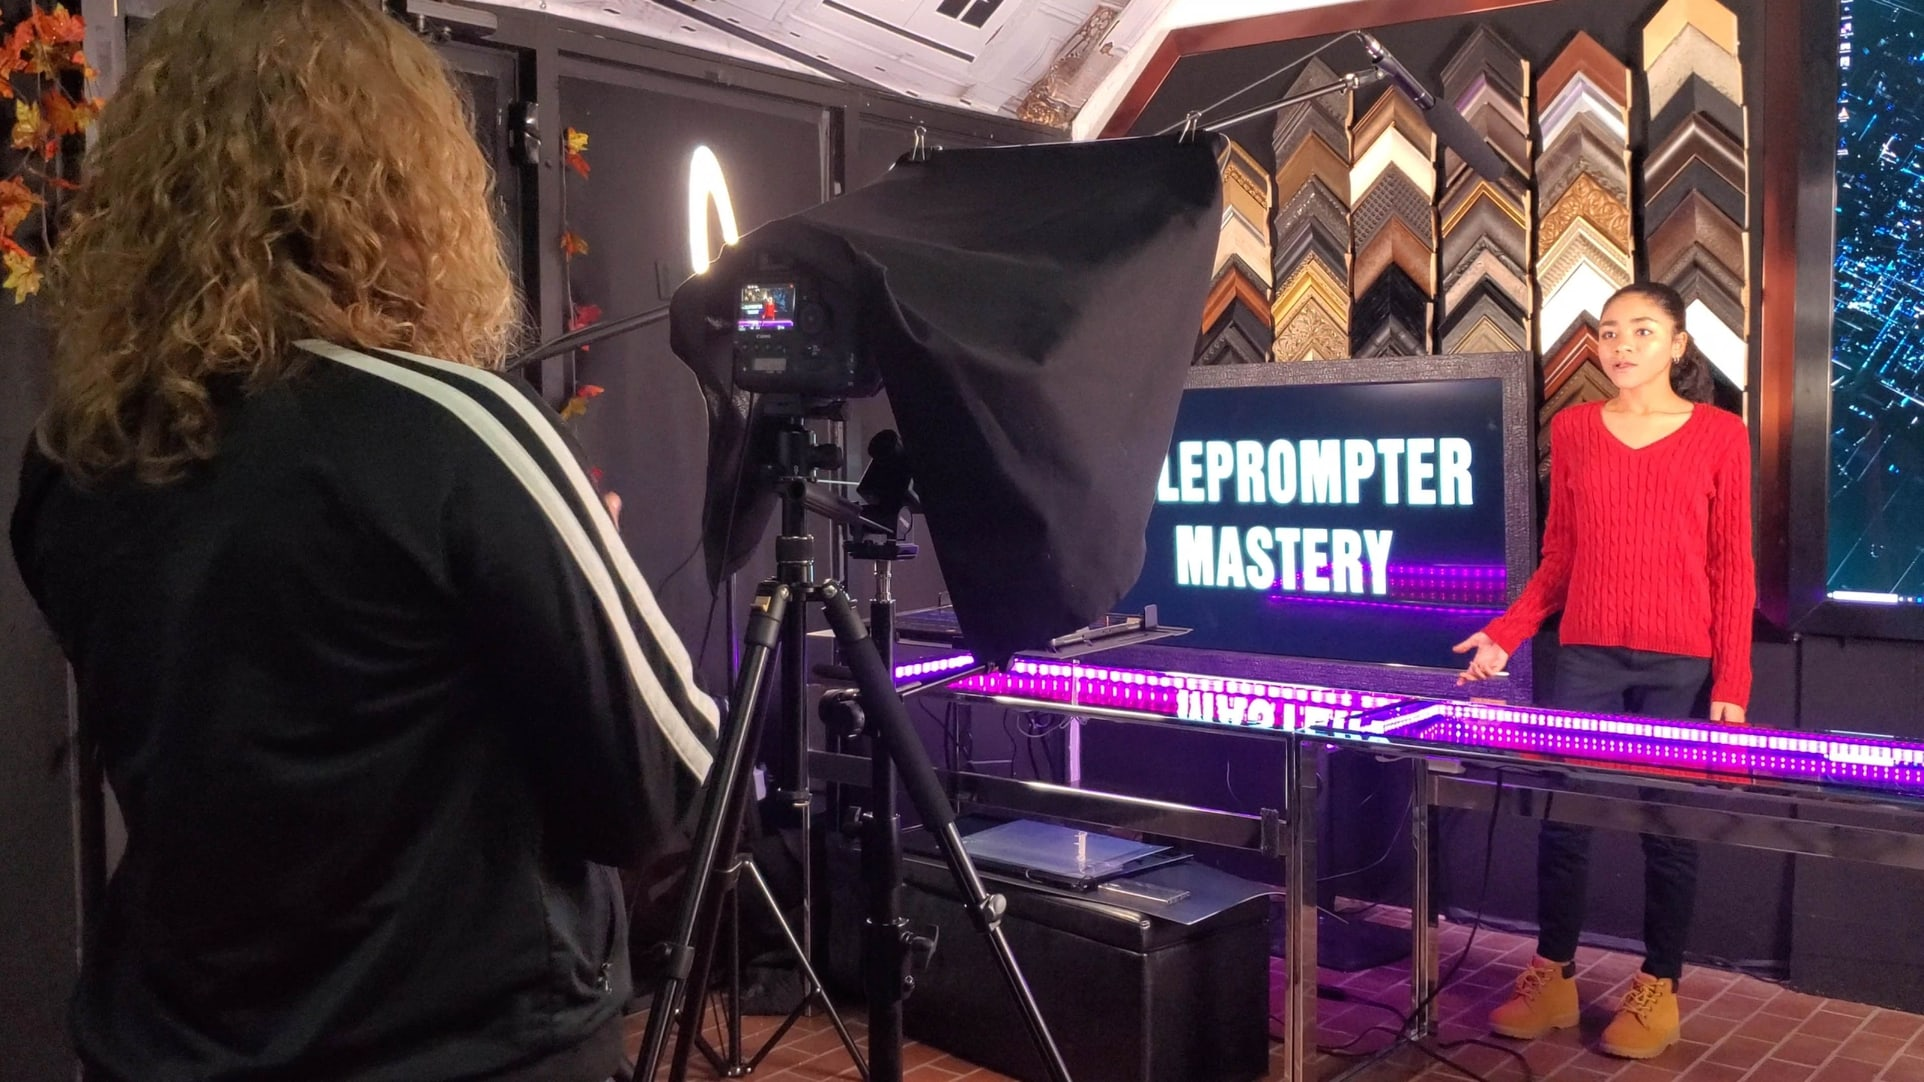 Using a Teleprompter to Record a Video